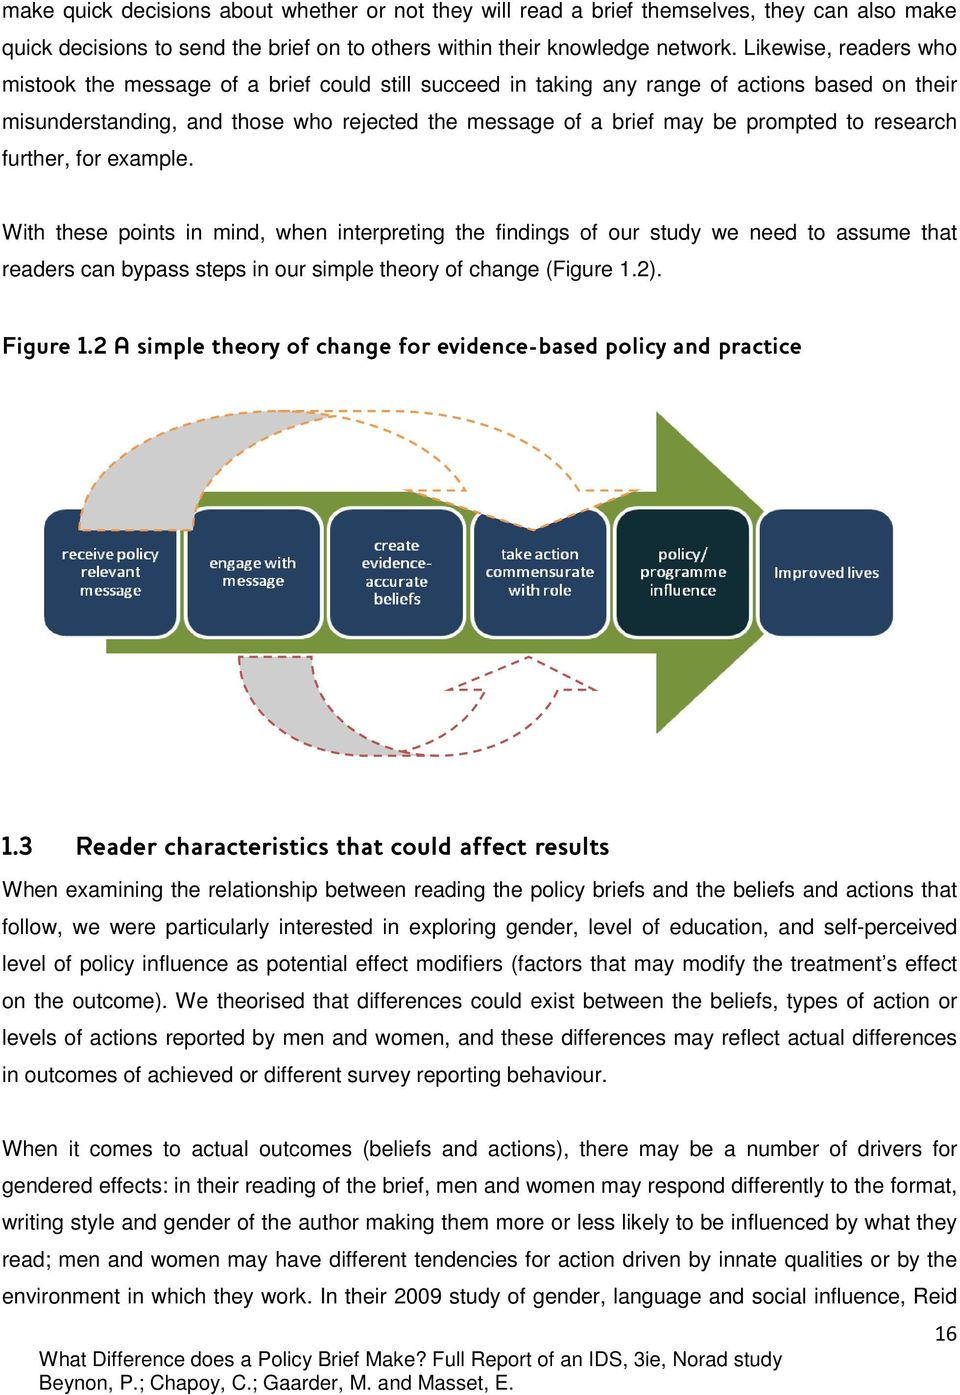 to research further, for example. With these points in mind, when interpreting the findings of our study we need to assume that readers can bypass steps in our simple theory of change (Figure 1.2).